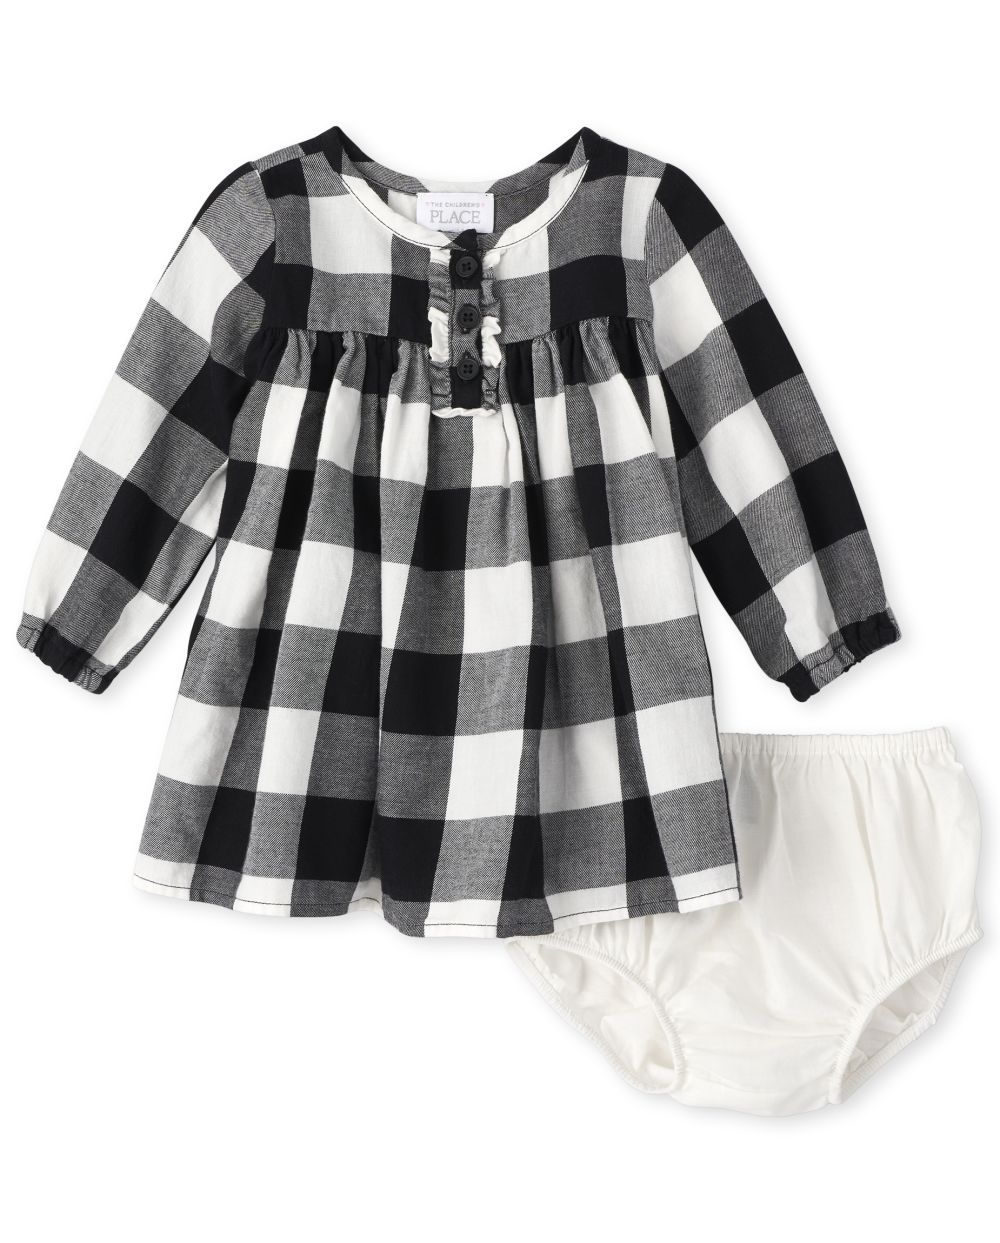 Baby Girls Matching Family Buffalo Plaid Shirt Dress